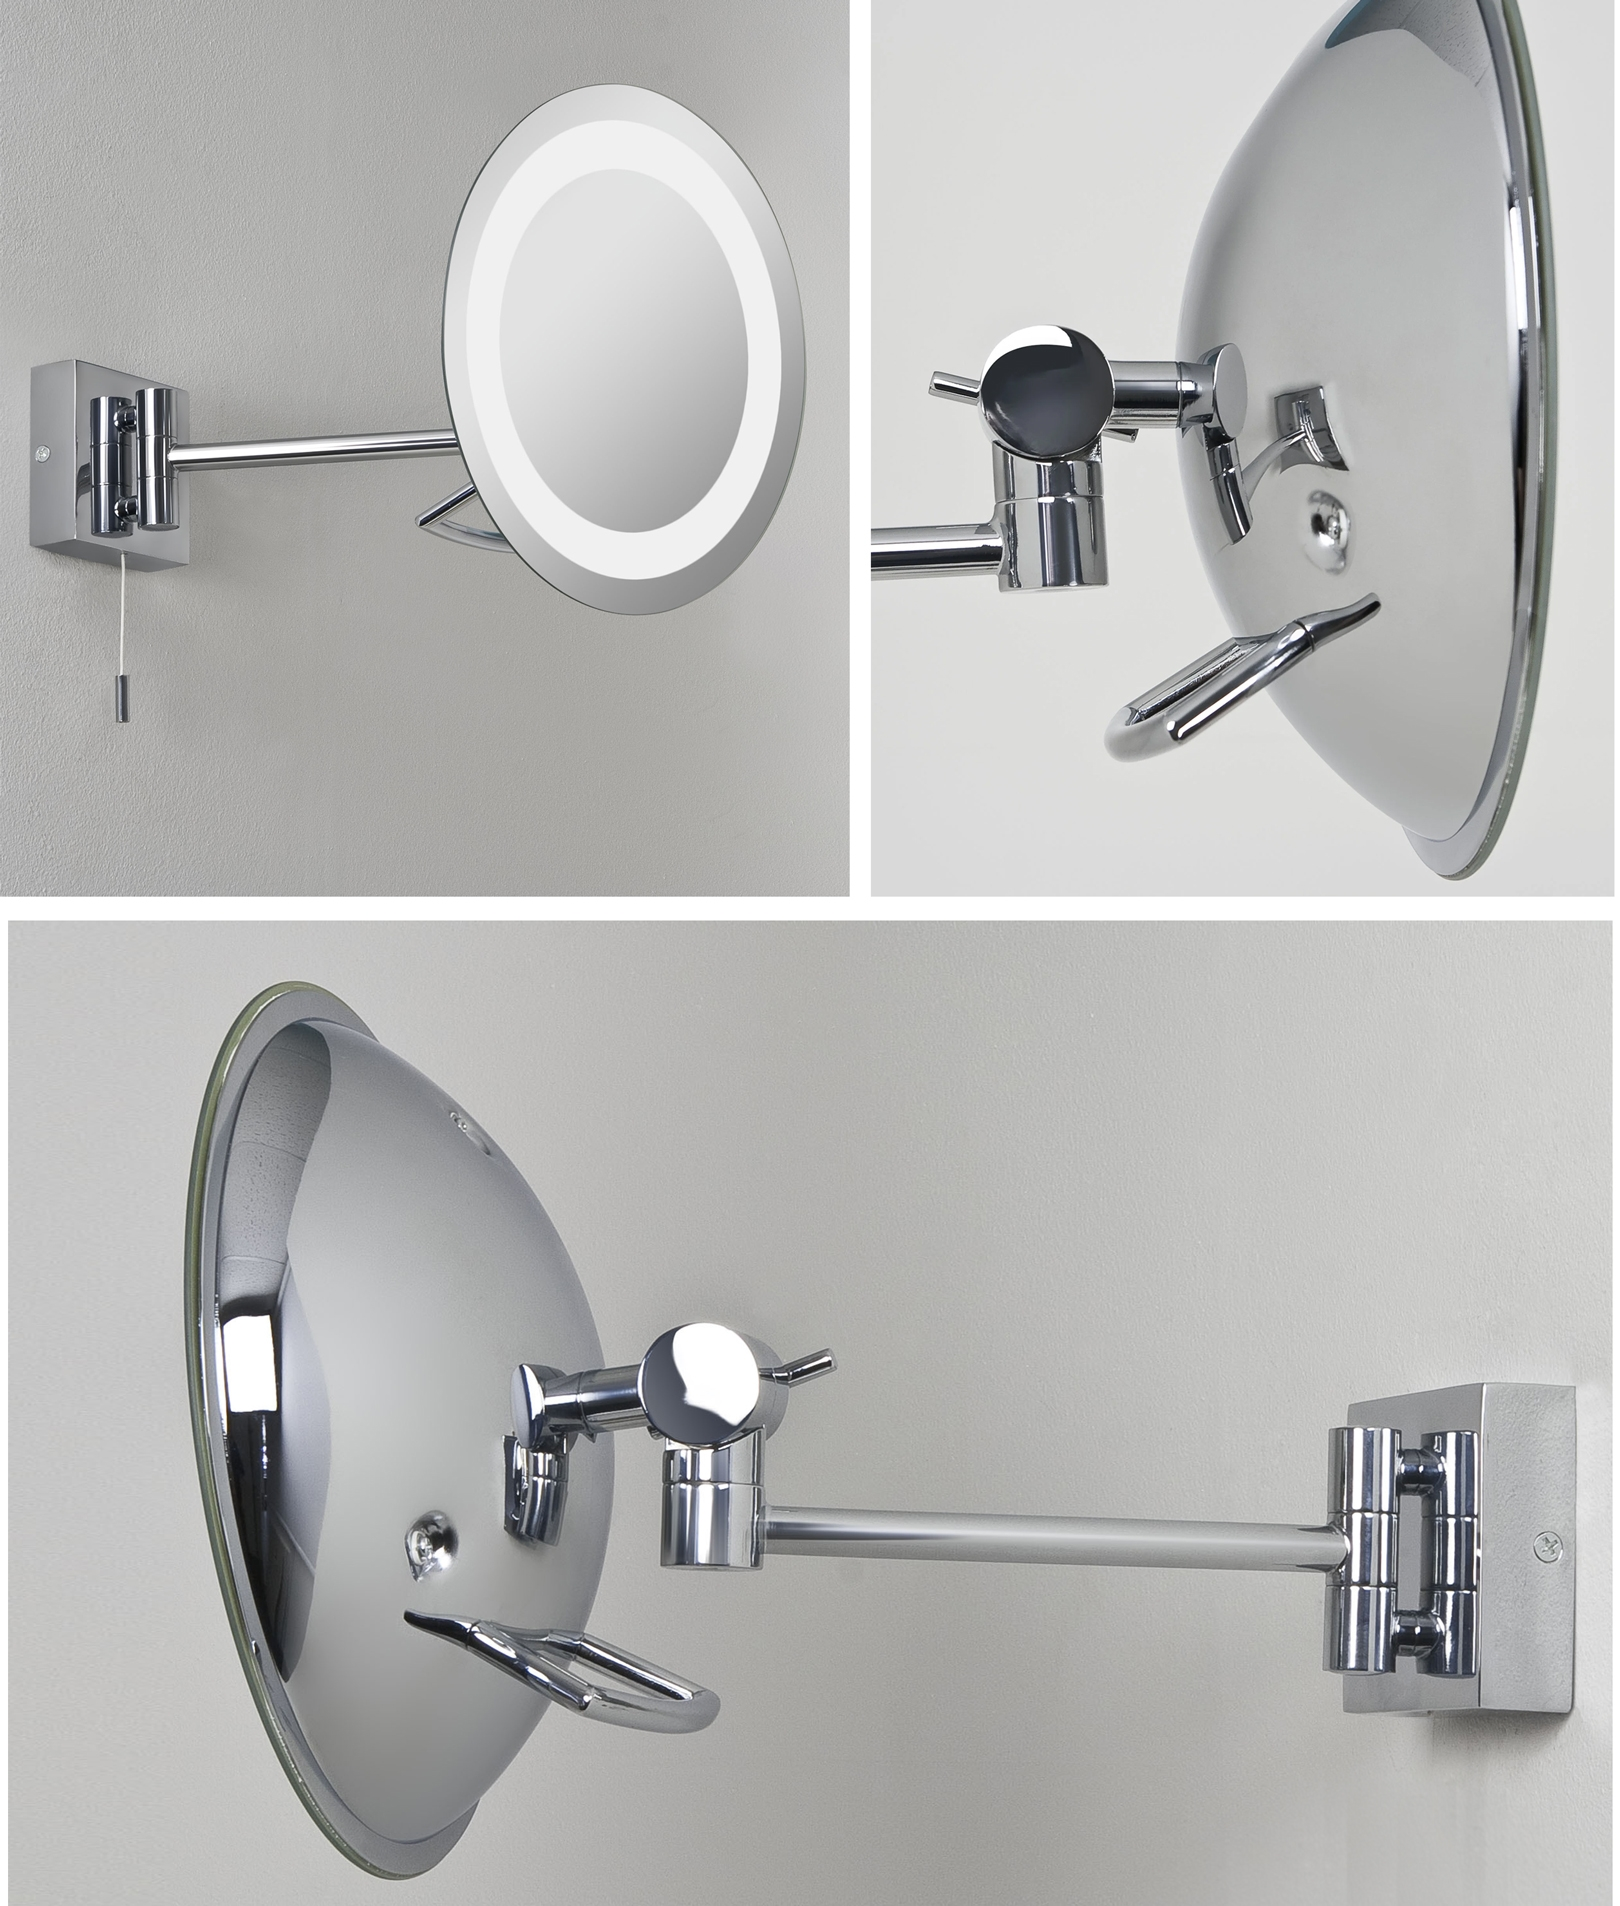 Illuminated Vanity Mirror Wall Mounted On Long Stem 3x Magnification Round Low Energy Bathroom Vanity Mirror Ip44 Unswitched